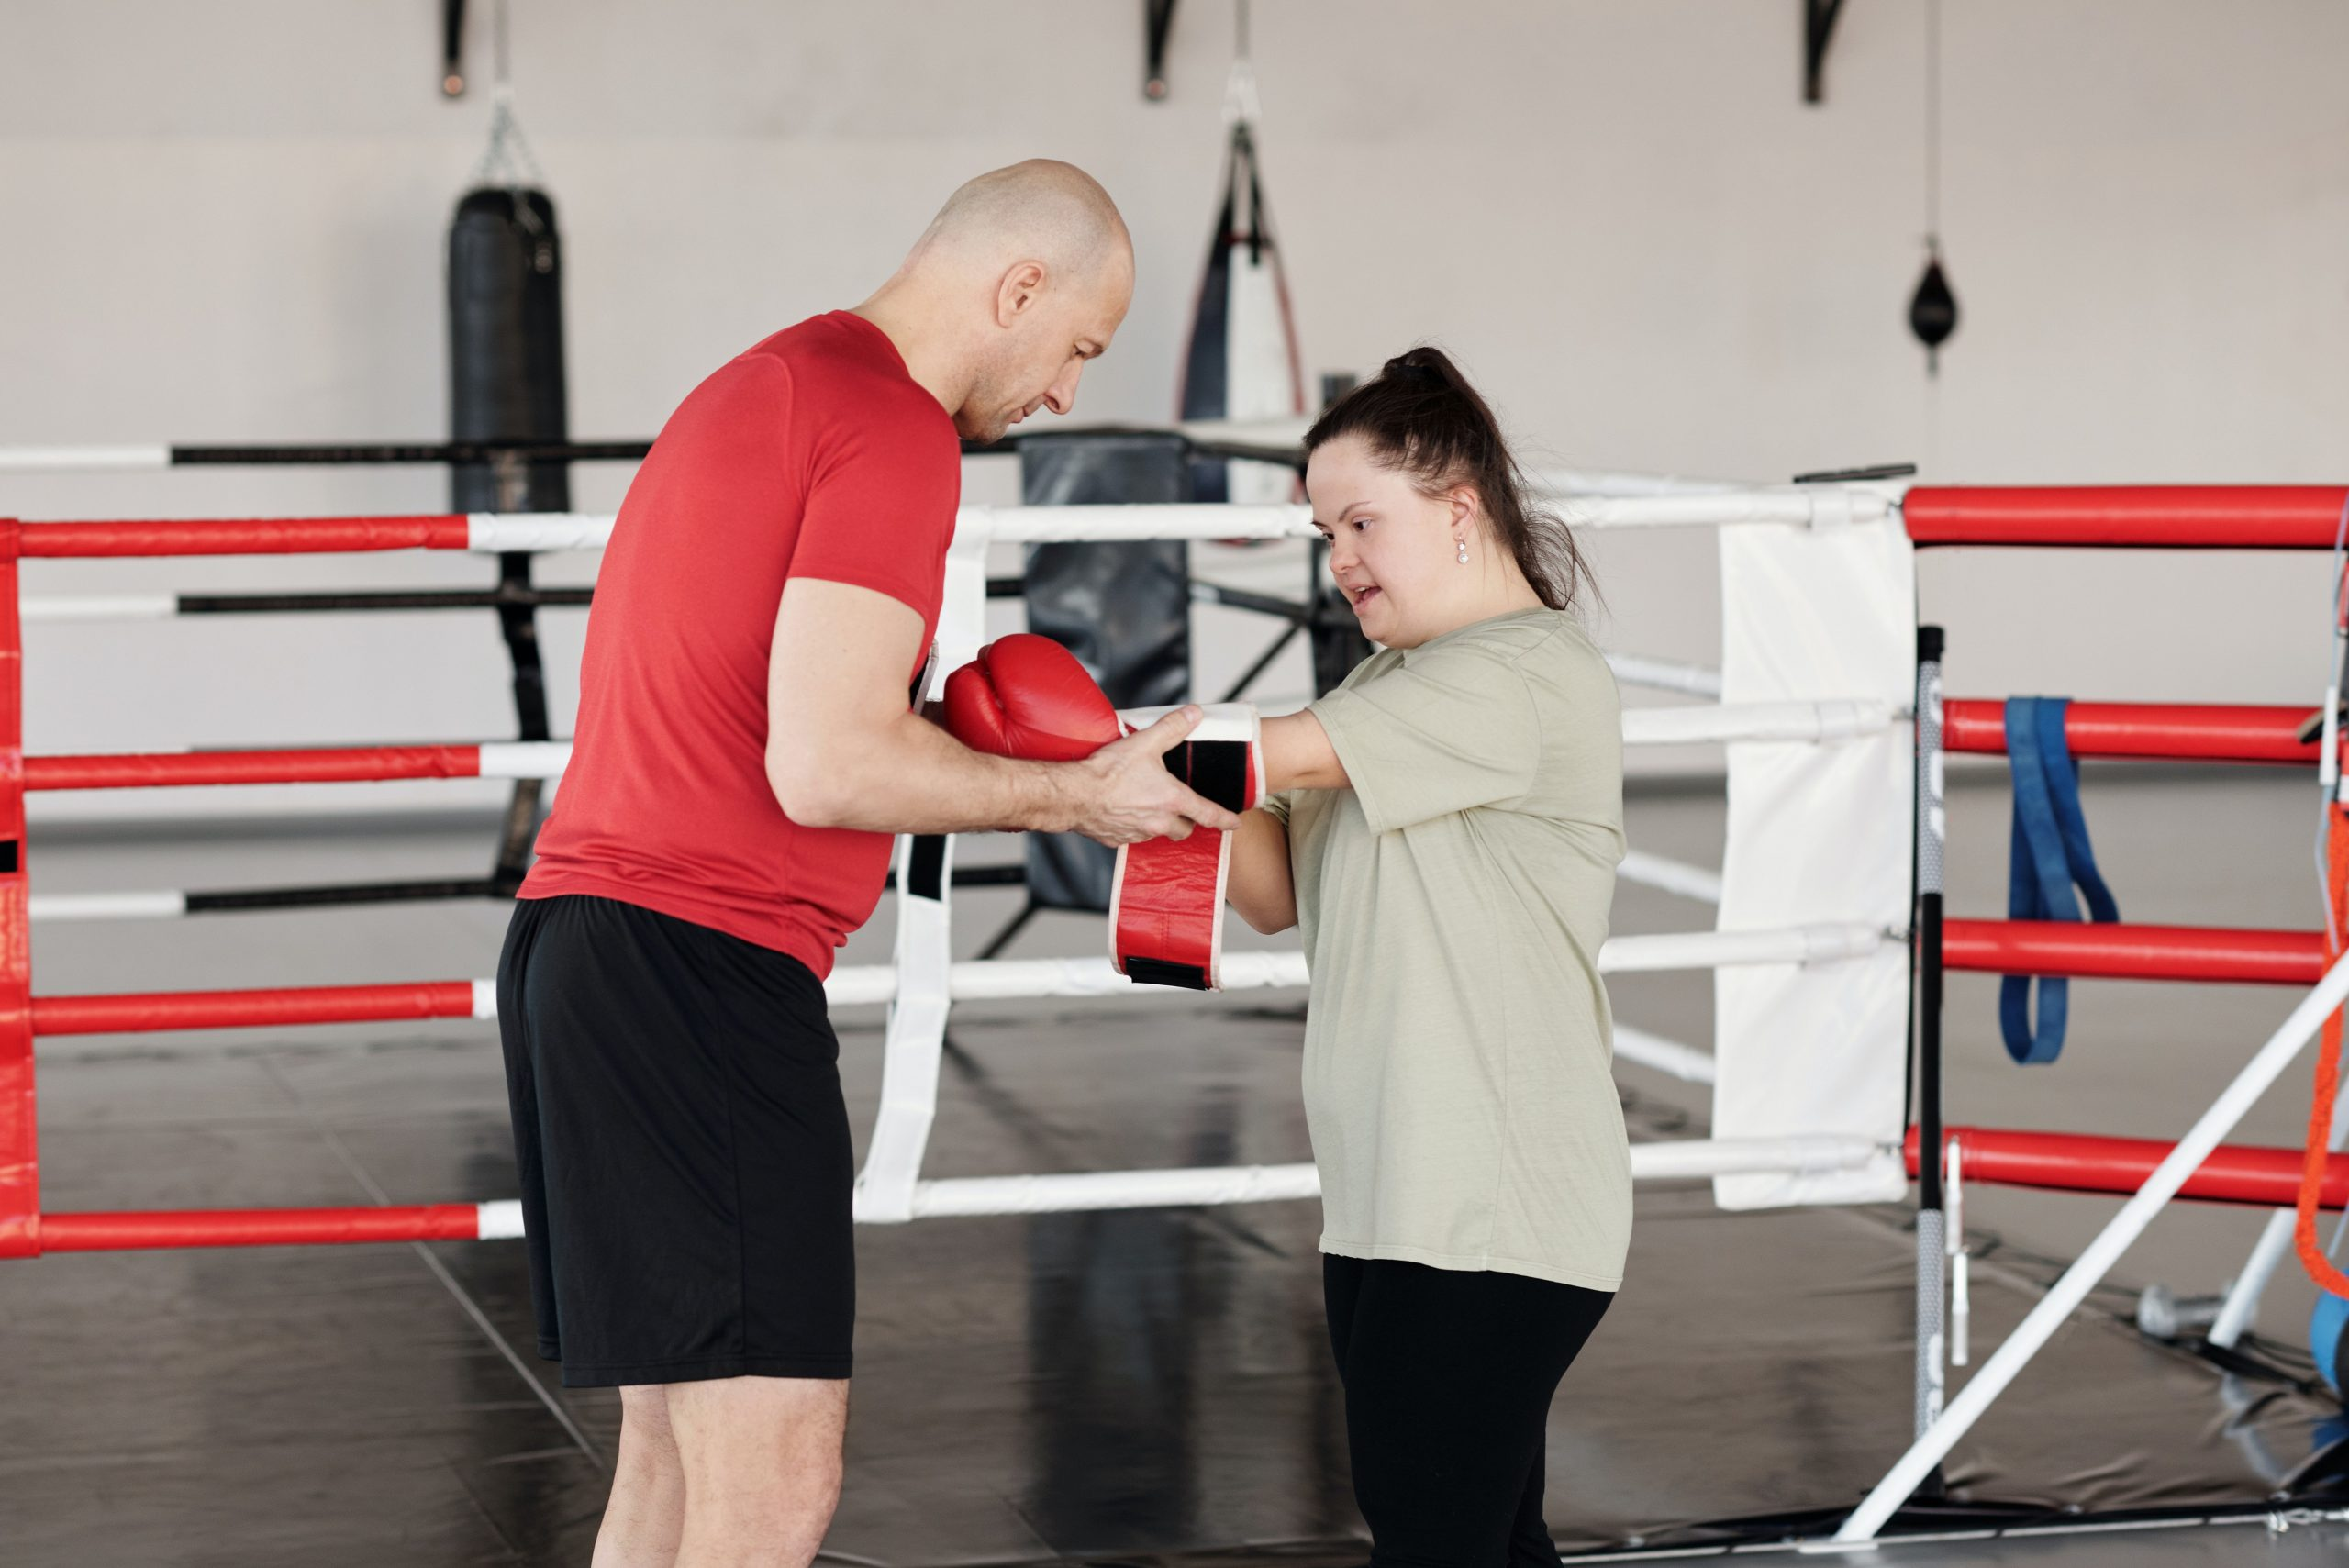 Boxer helping boxer with downs syndrome put on their glove